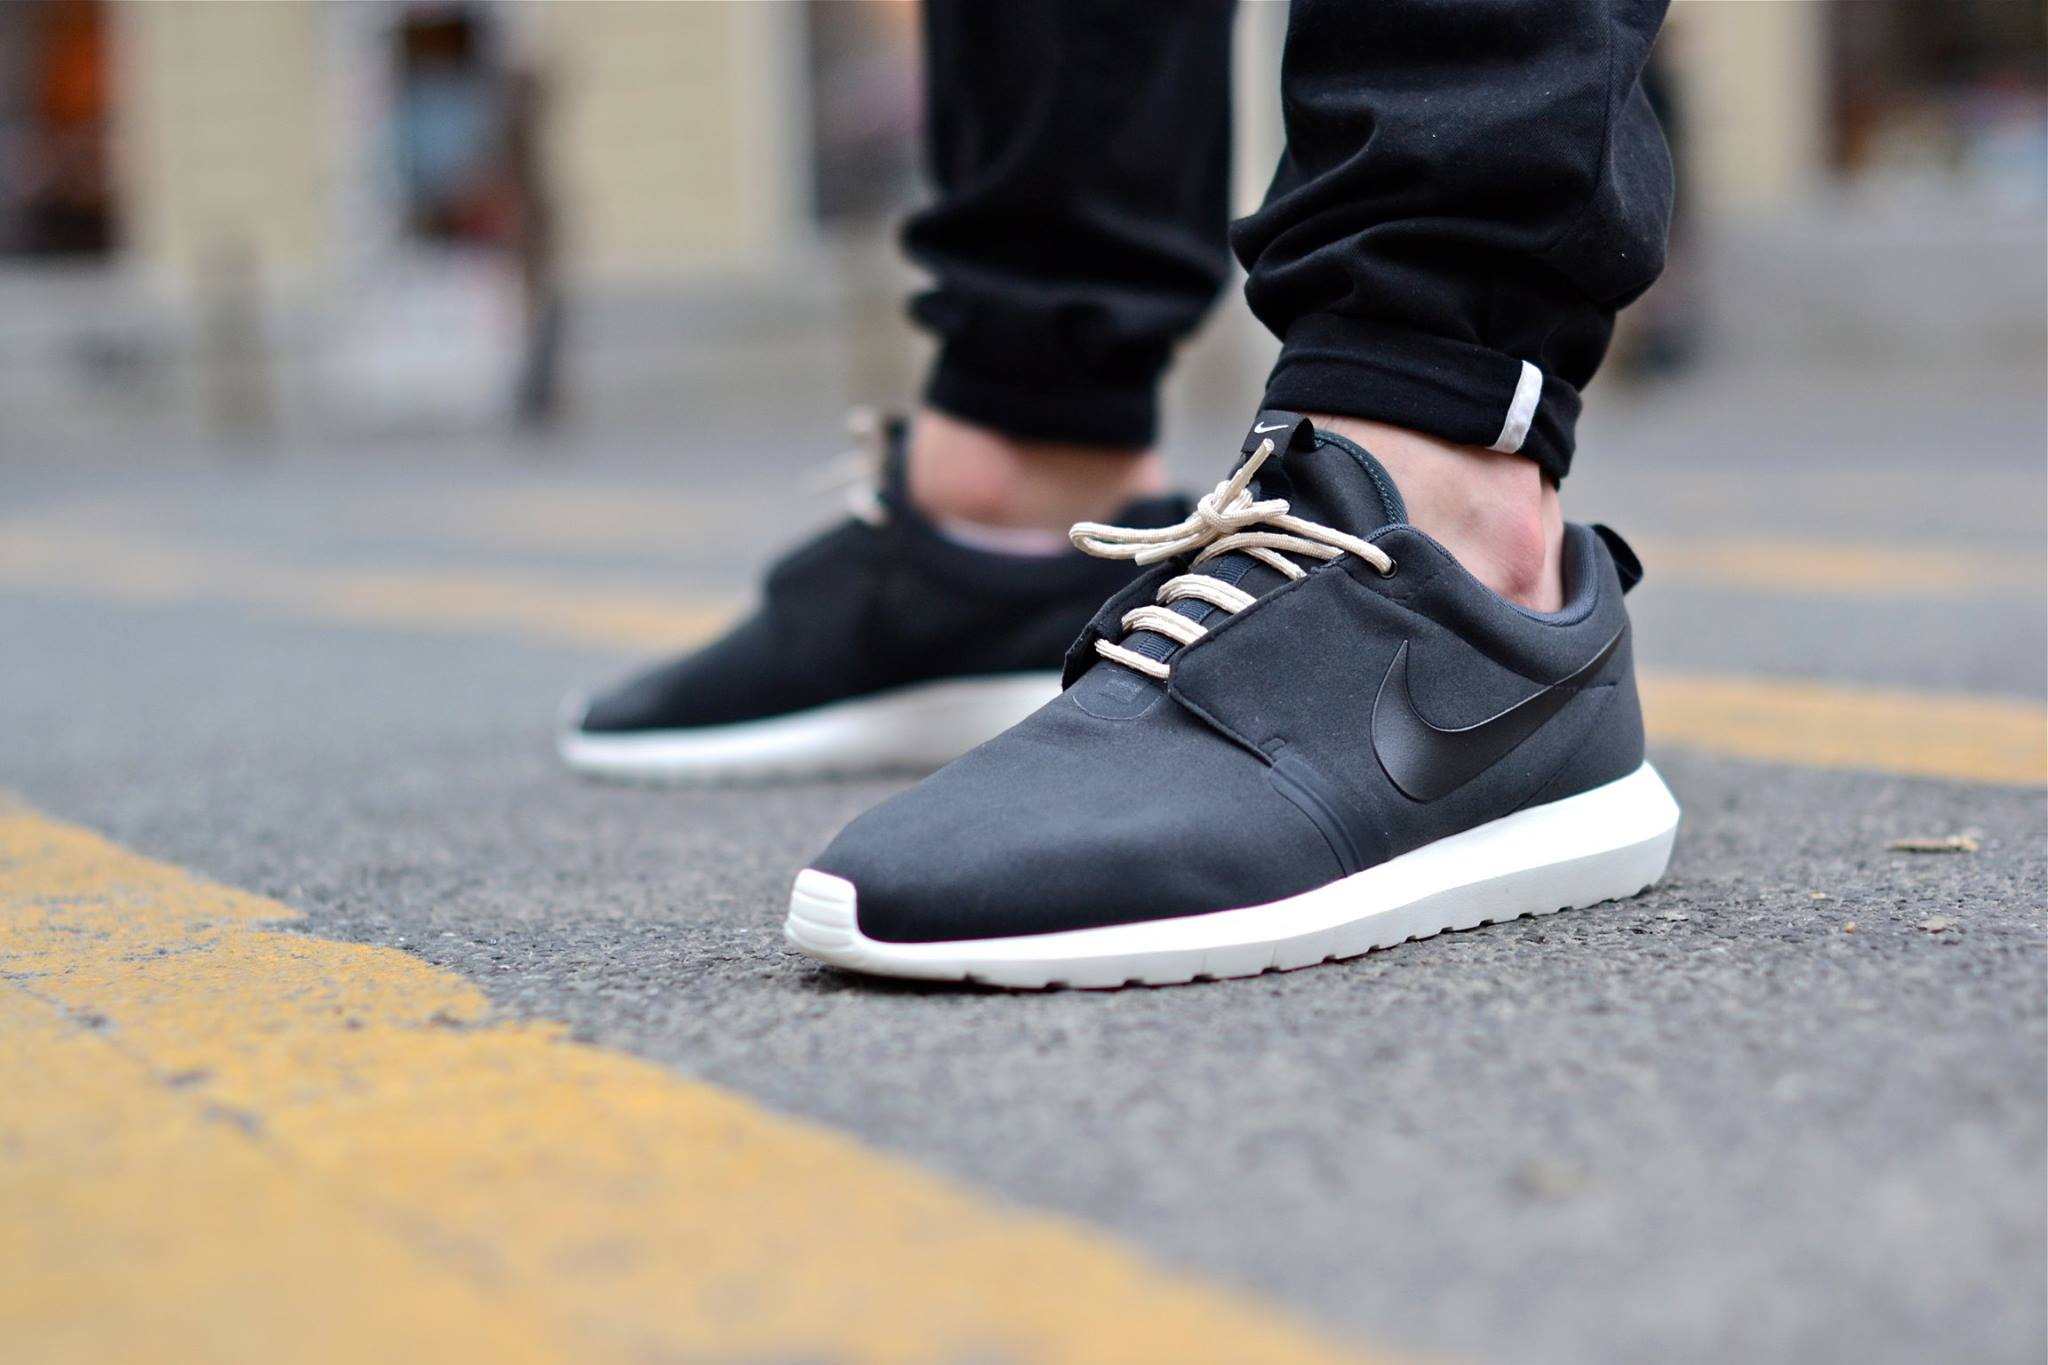 1780989_600364473373513_1599642237_o. The Nike Roshe Run ...